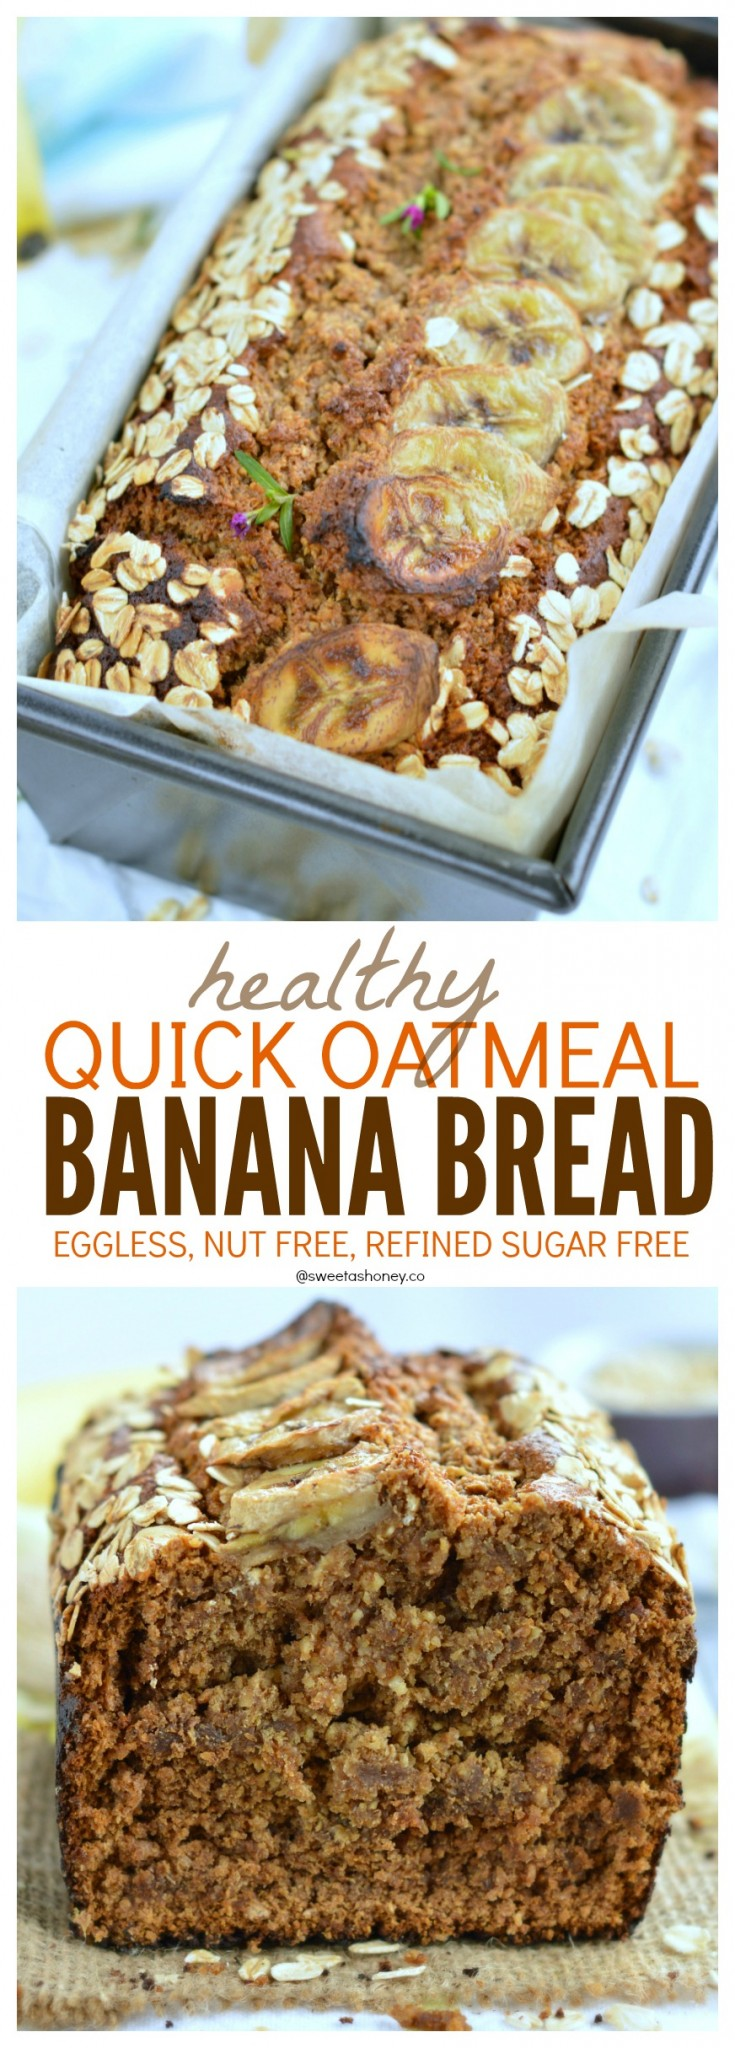 Oatmeal banana bread eggless banana bread sweetashoney oatmeal banana bread vegan banana bread forumfinder Image collections